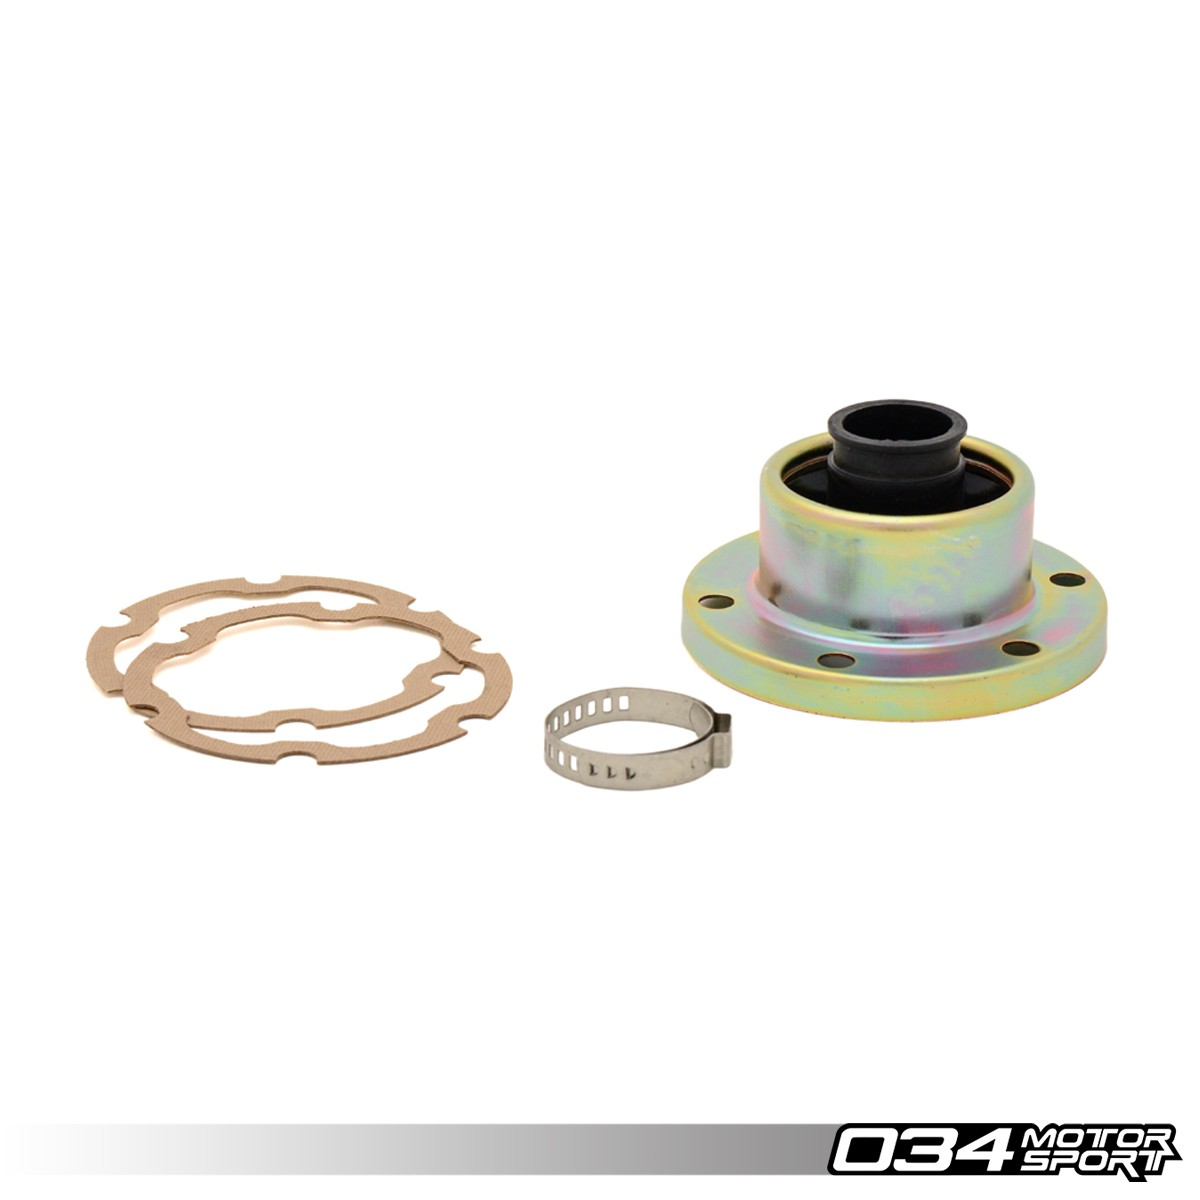 Driveshaft CV Boot Repair Kit for Audi Quattro Vehicles | 034-506-Z001